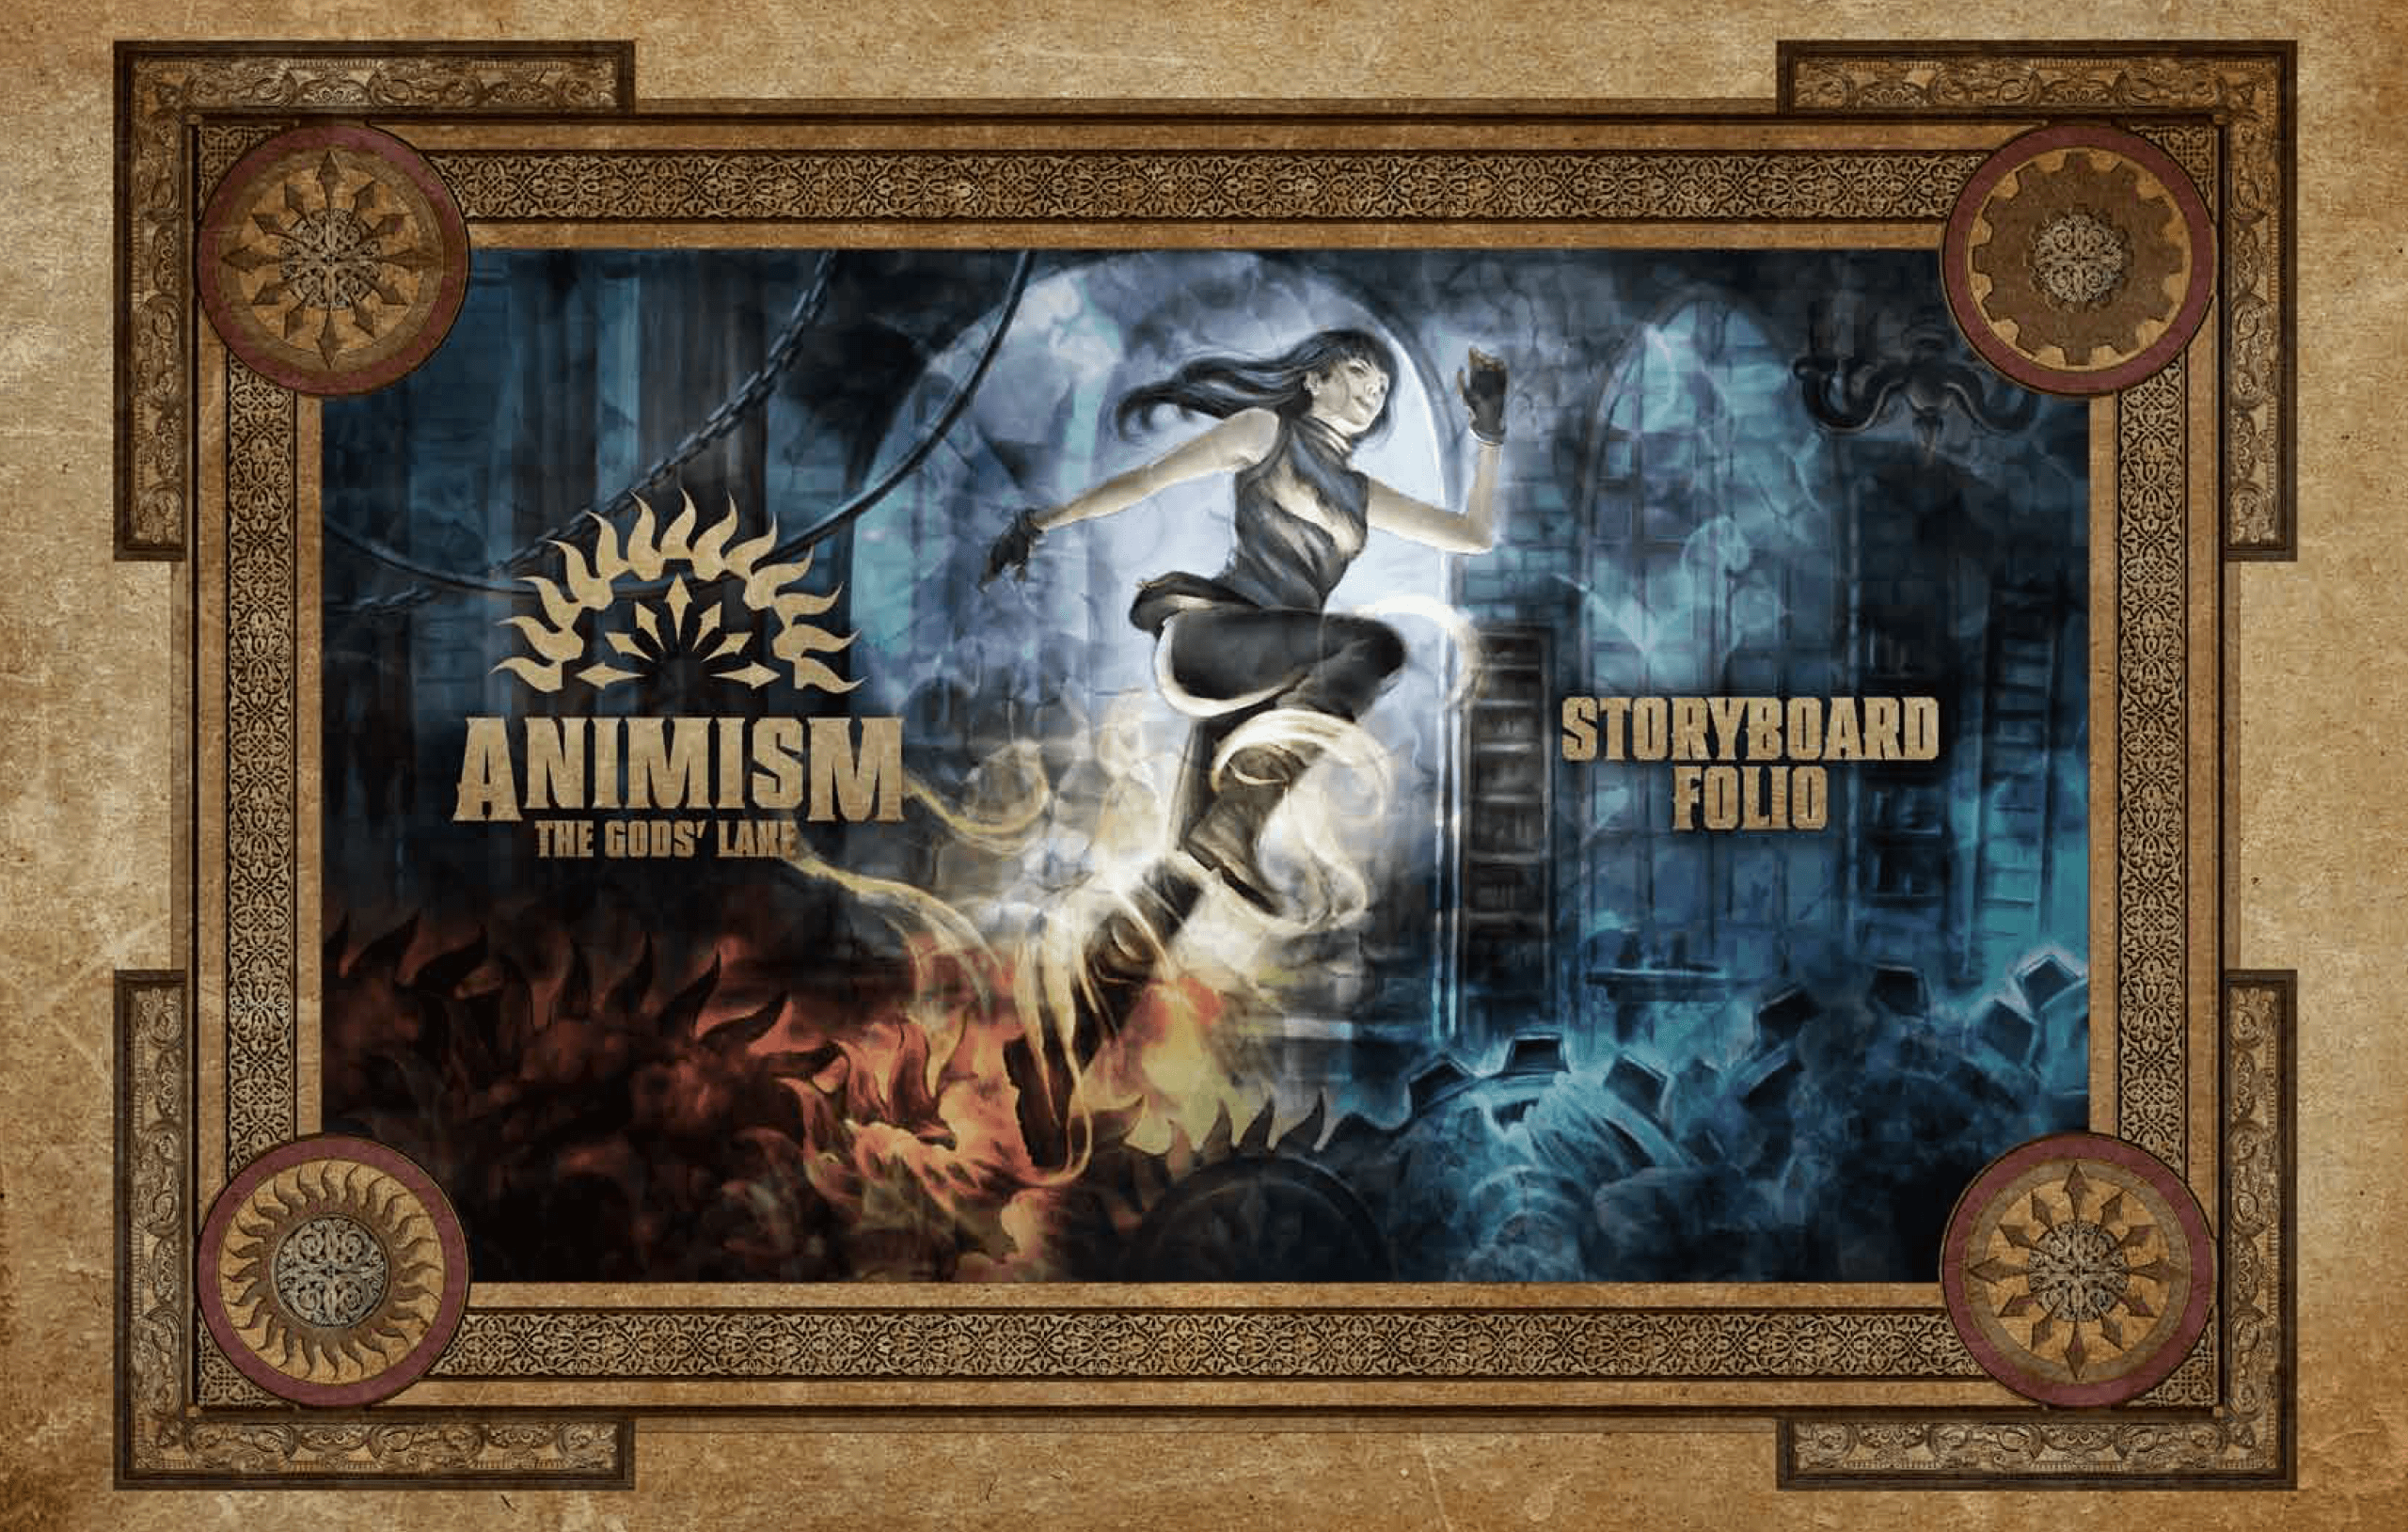 Animism-TheGodsLake-StoryboardFolio-Digital-1